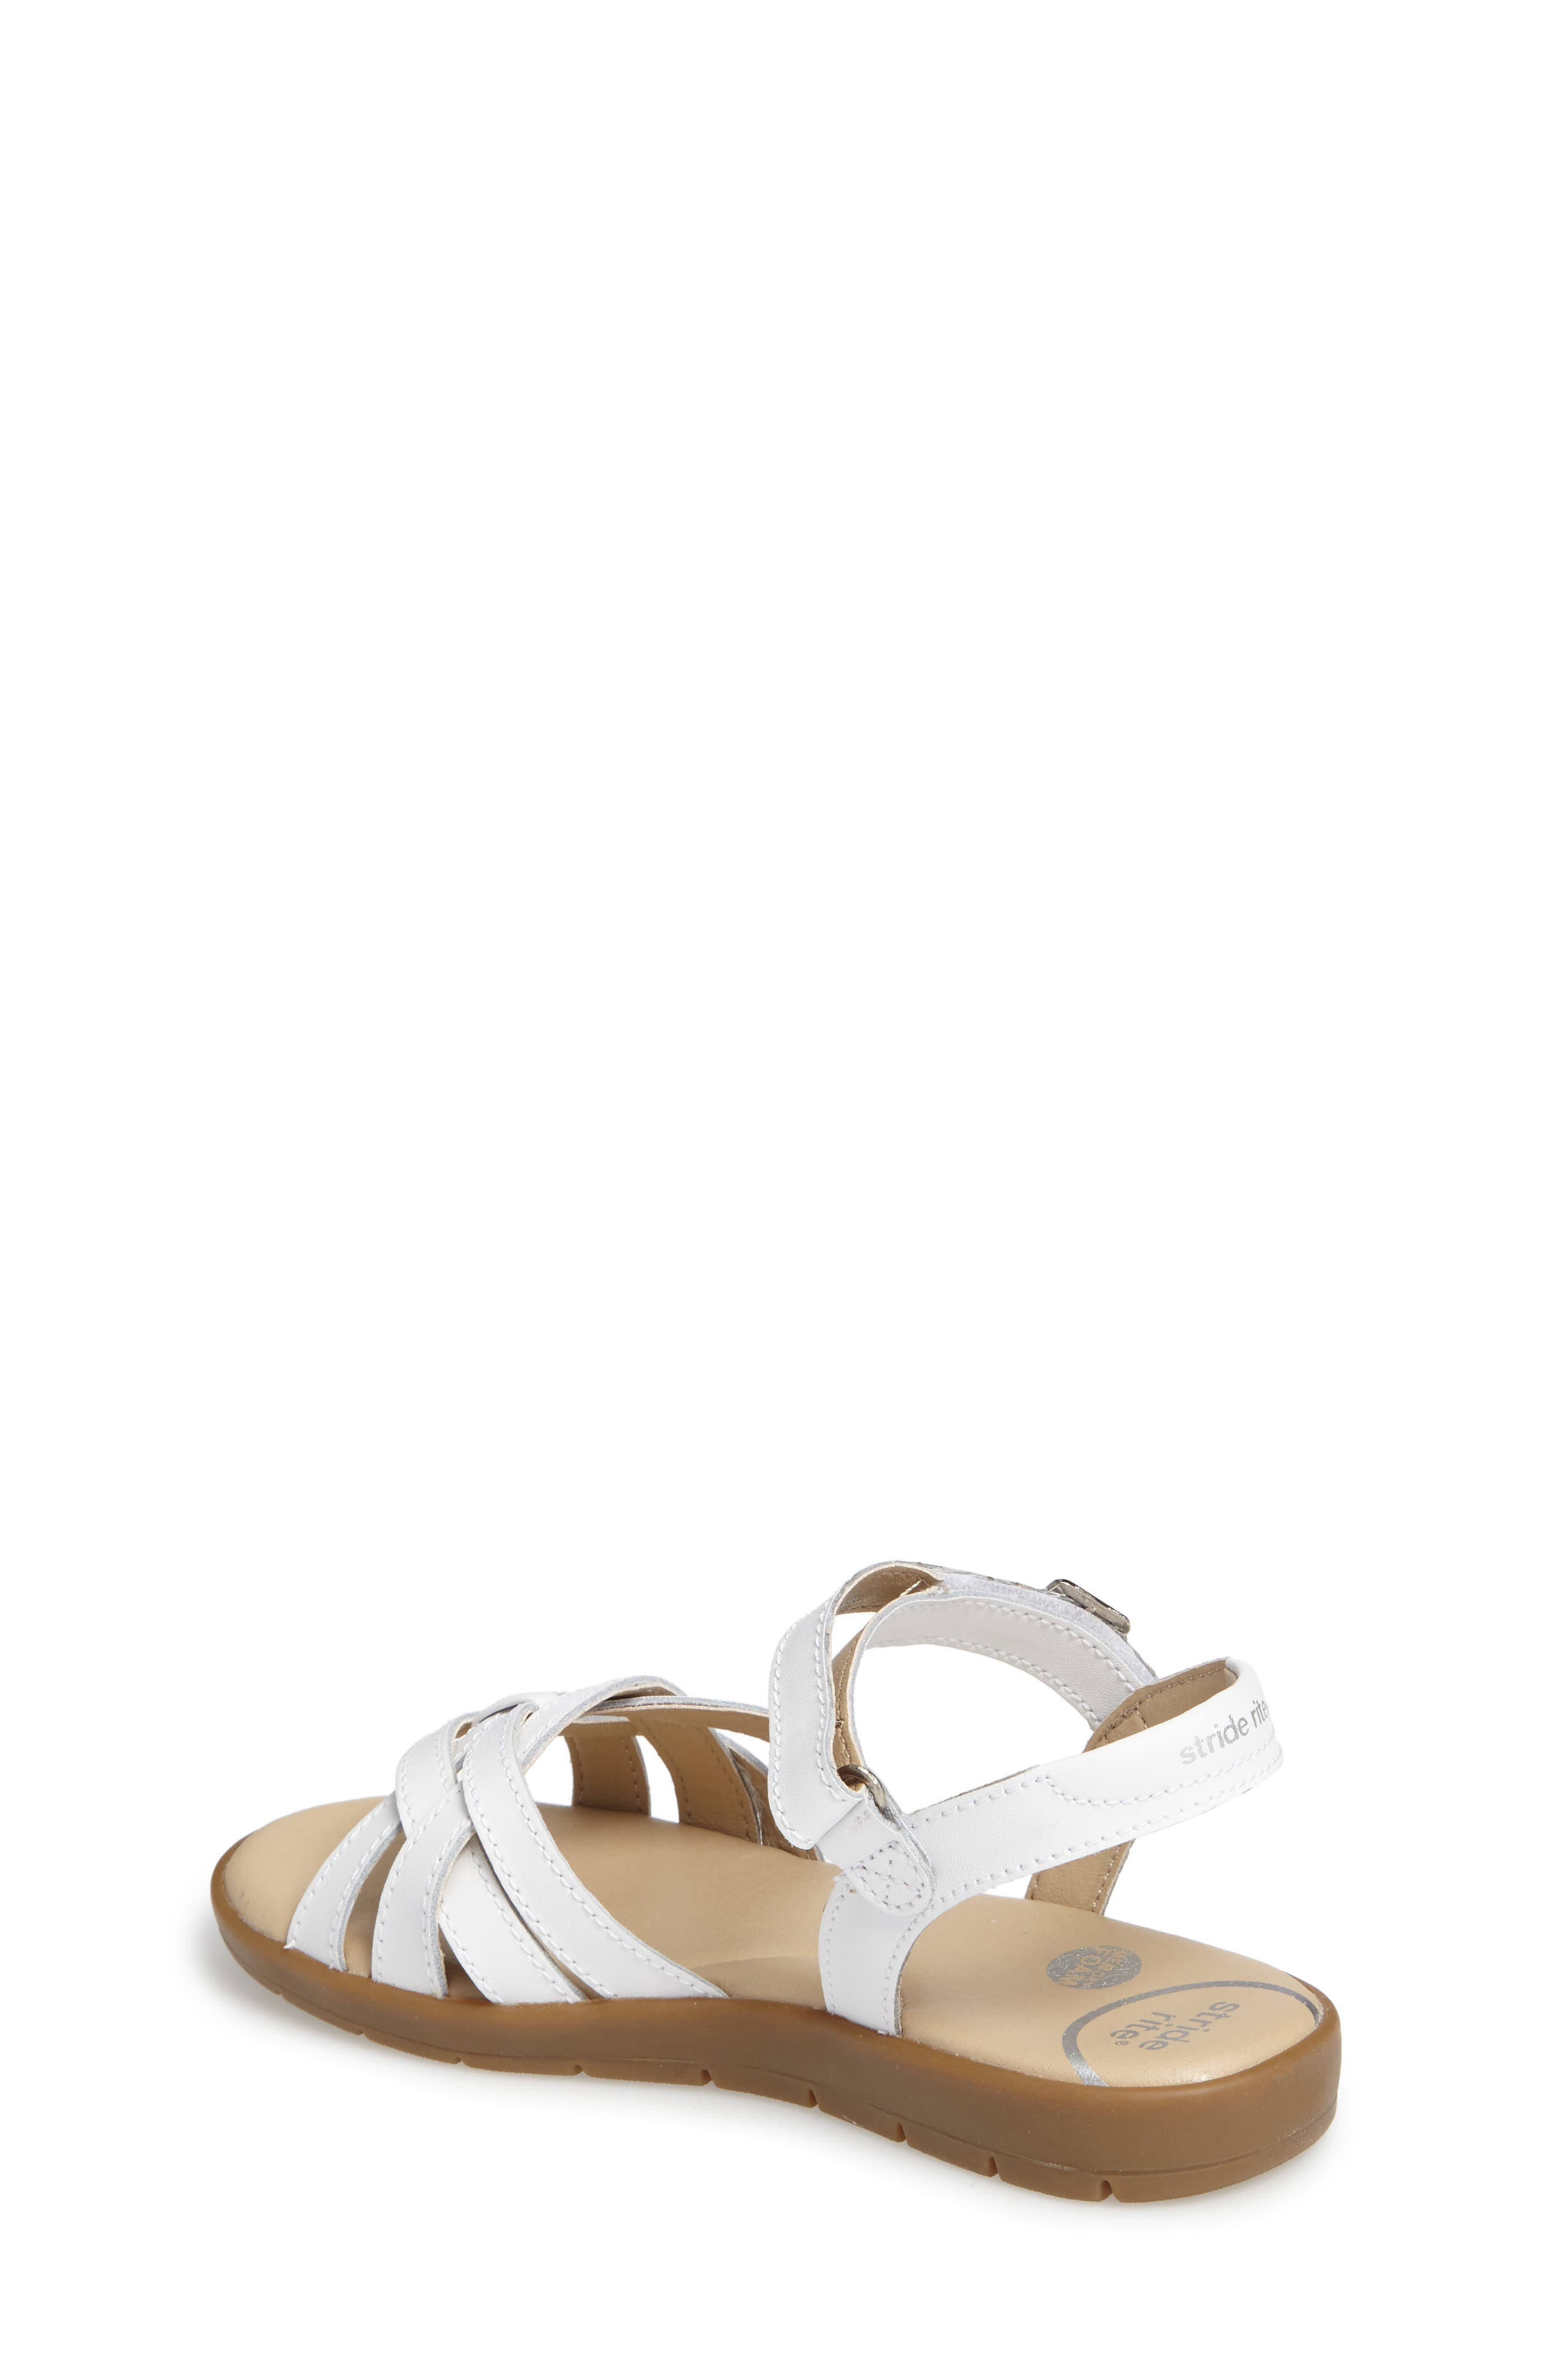 Millie Sandal,                             Alternate thumbnail 2, color,                             White